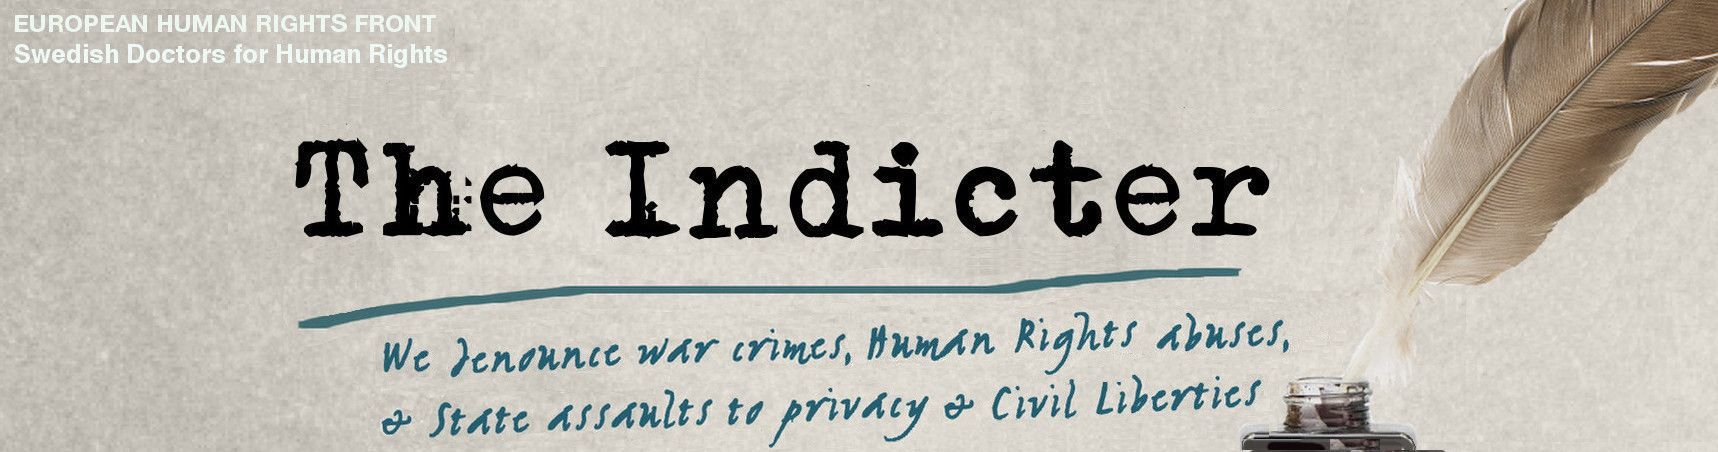 The Indicter logo